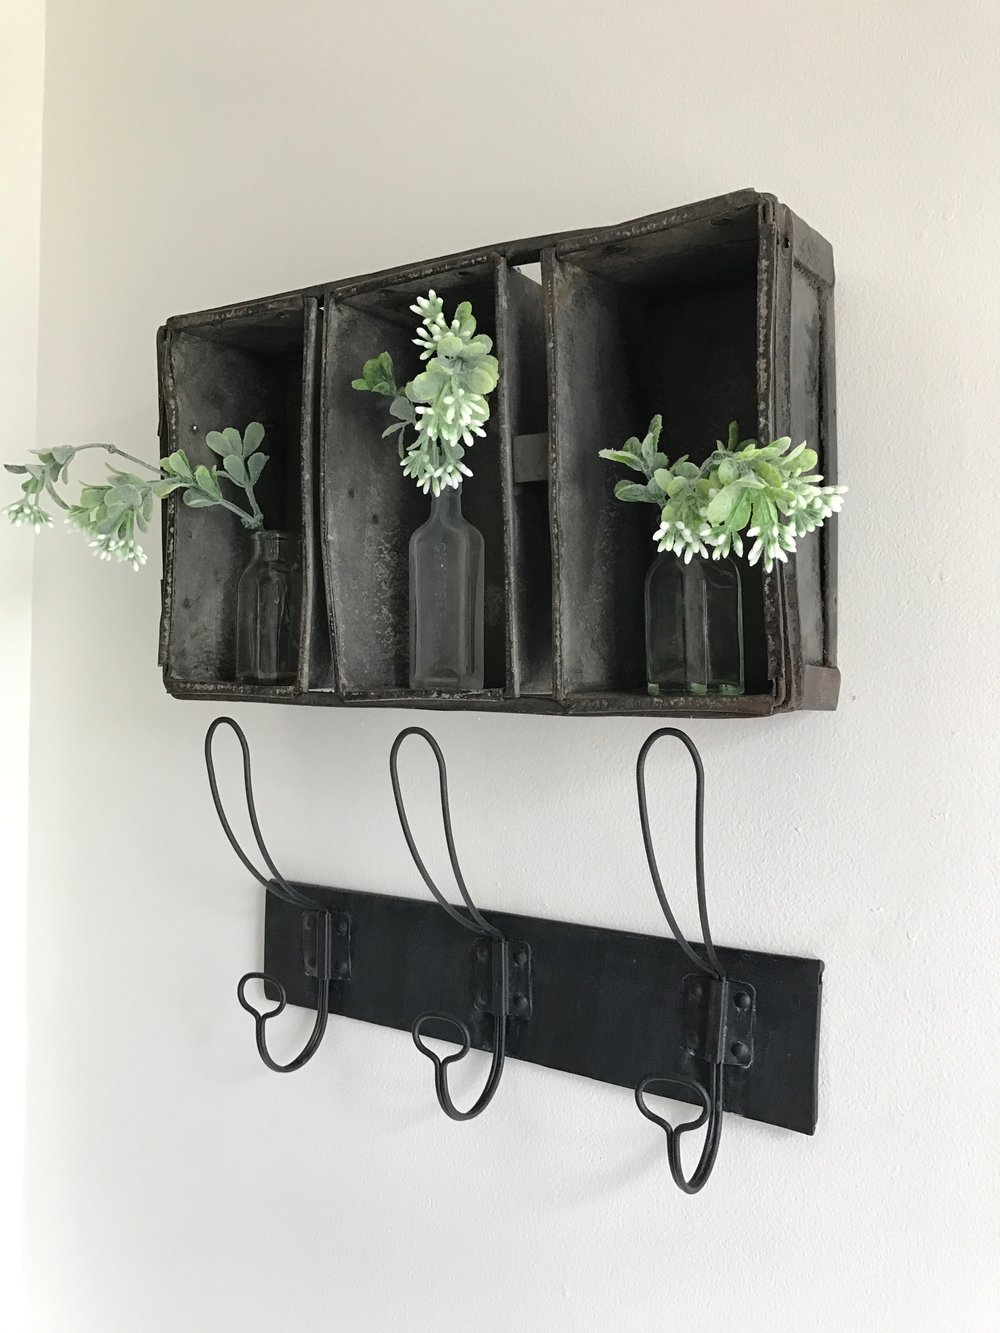 Full Farmhouse Master Bath Tour- With Antique Loaf Pan Wall Decor by Plum Pretty Decor and Design